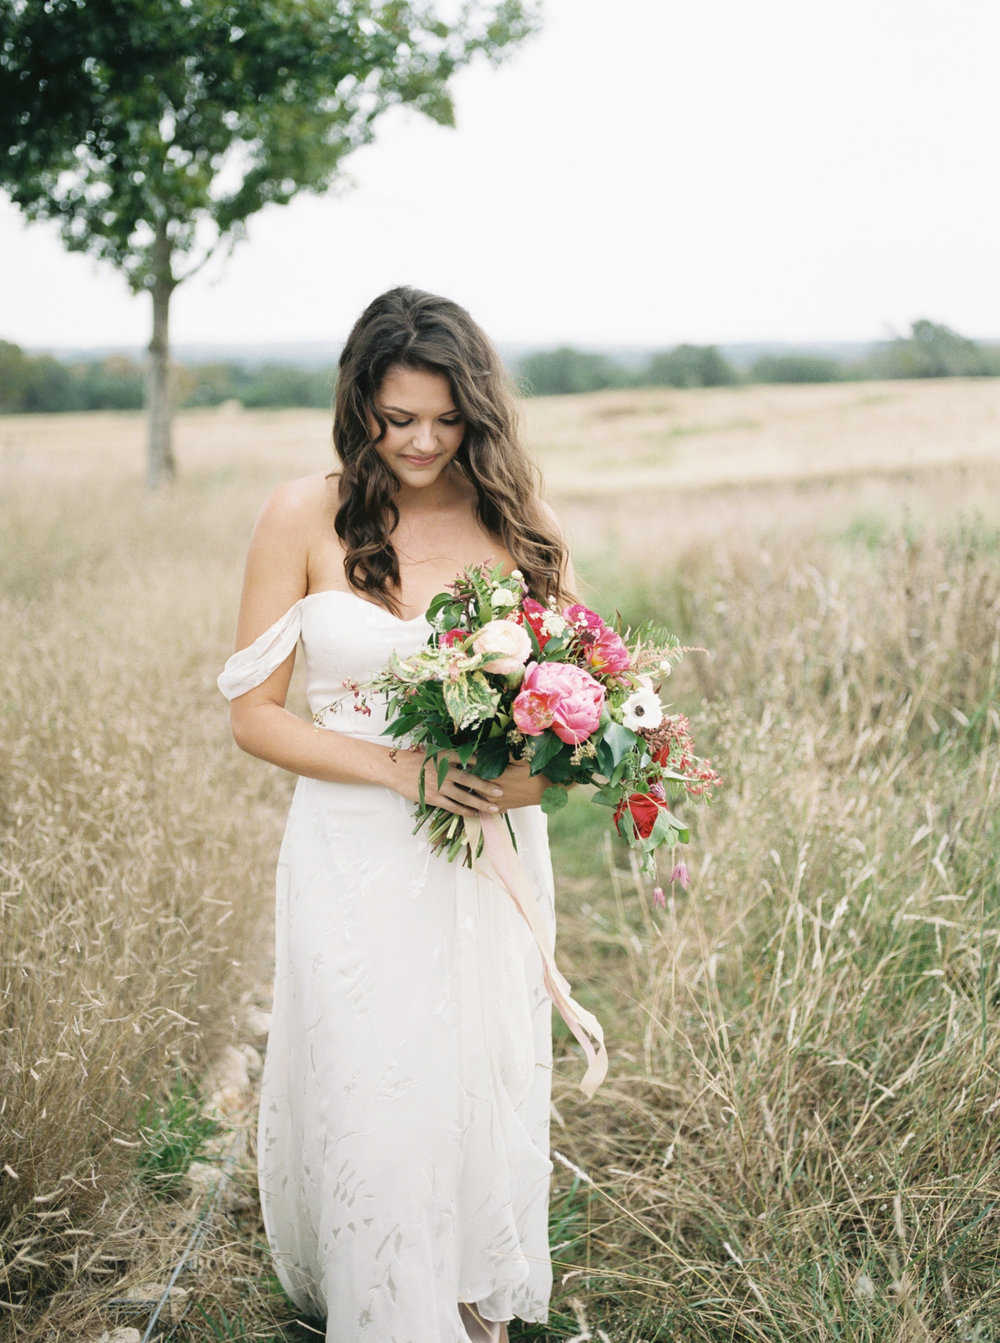 Austin beautiful bridal portrait inspiration